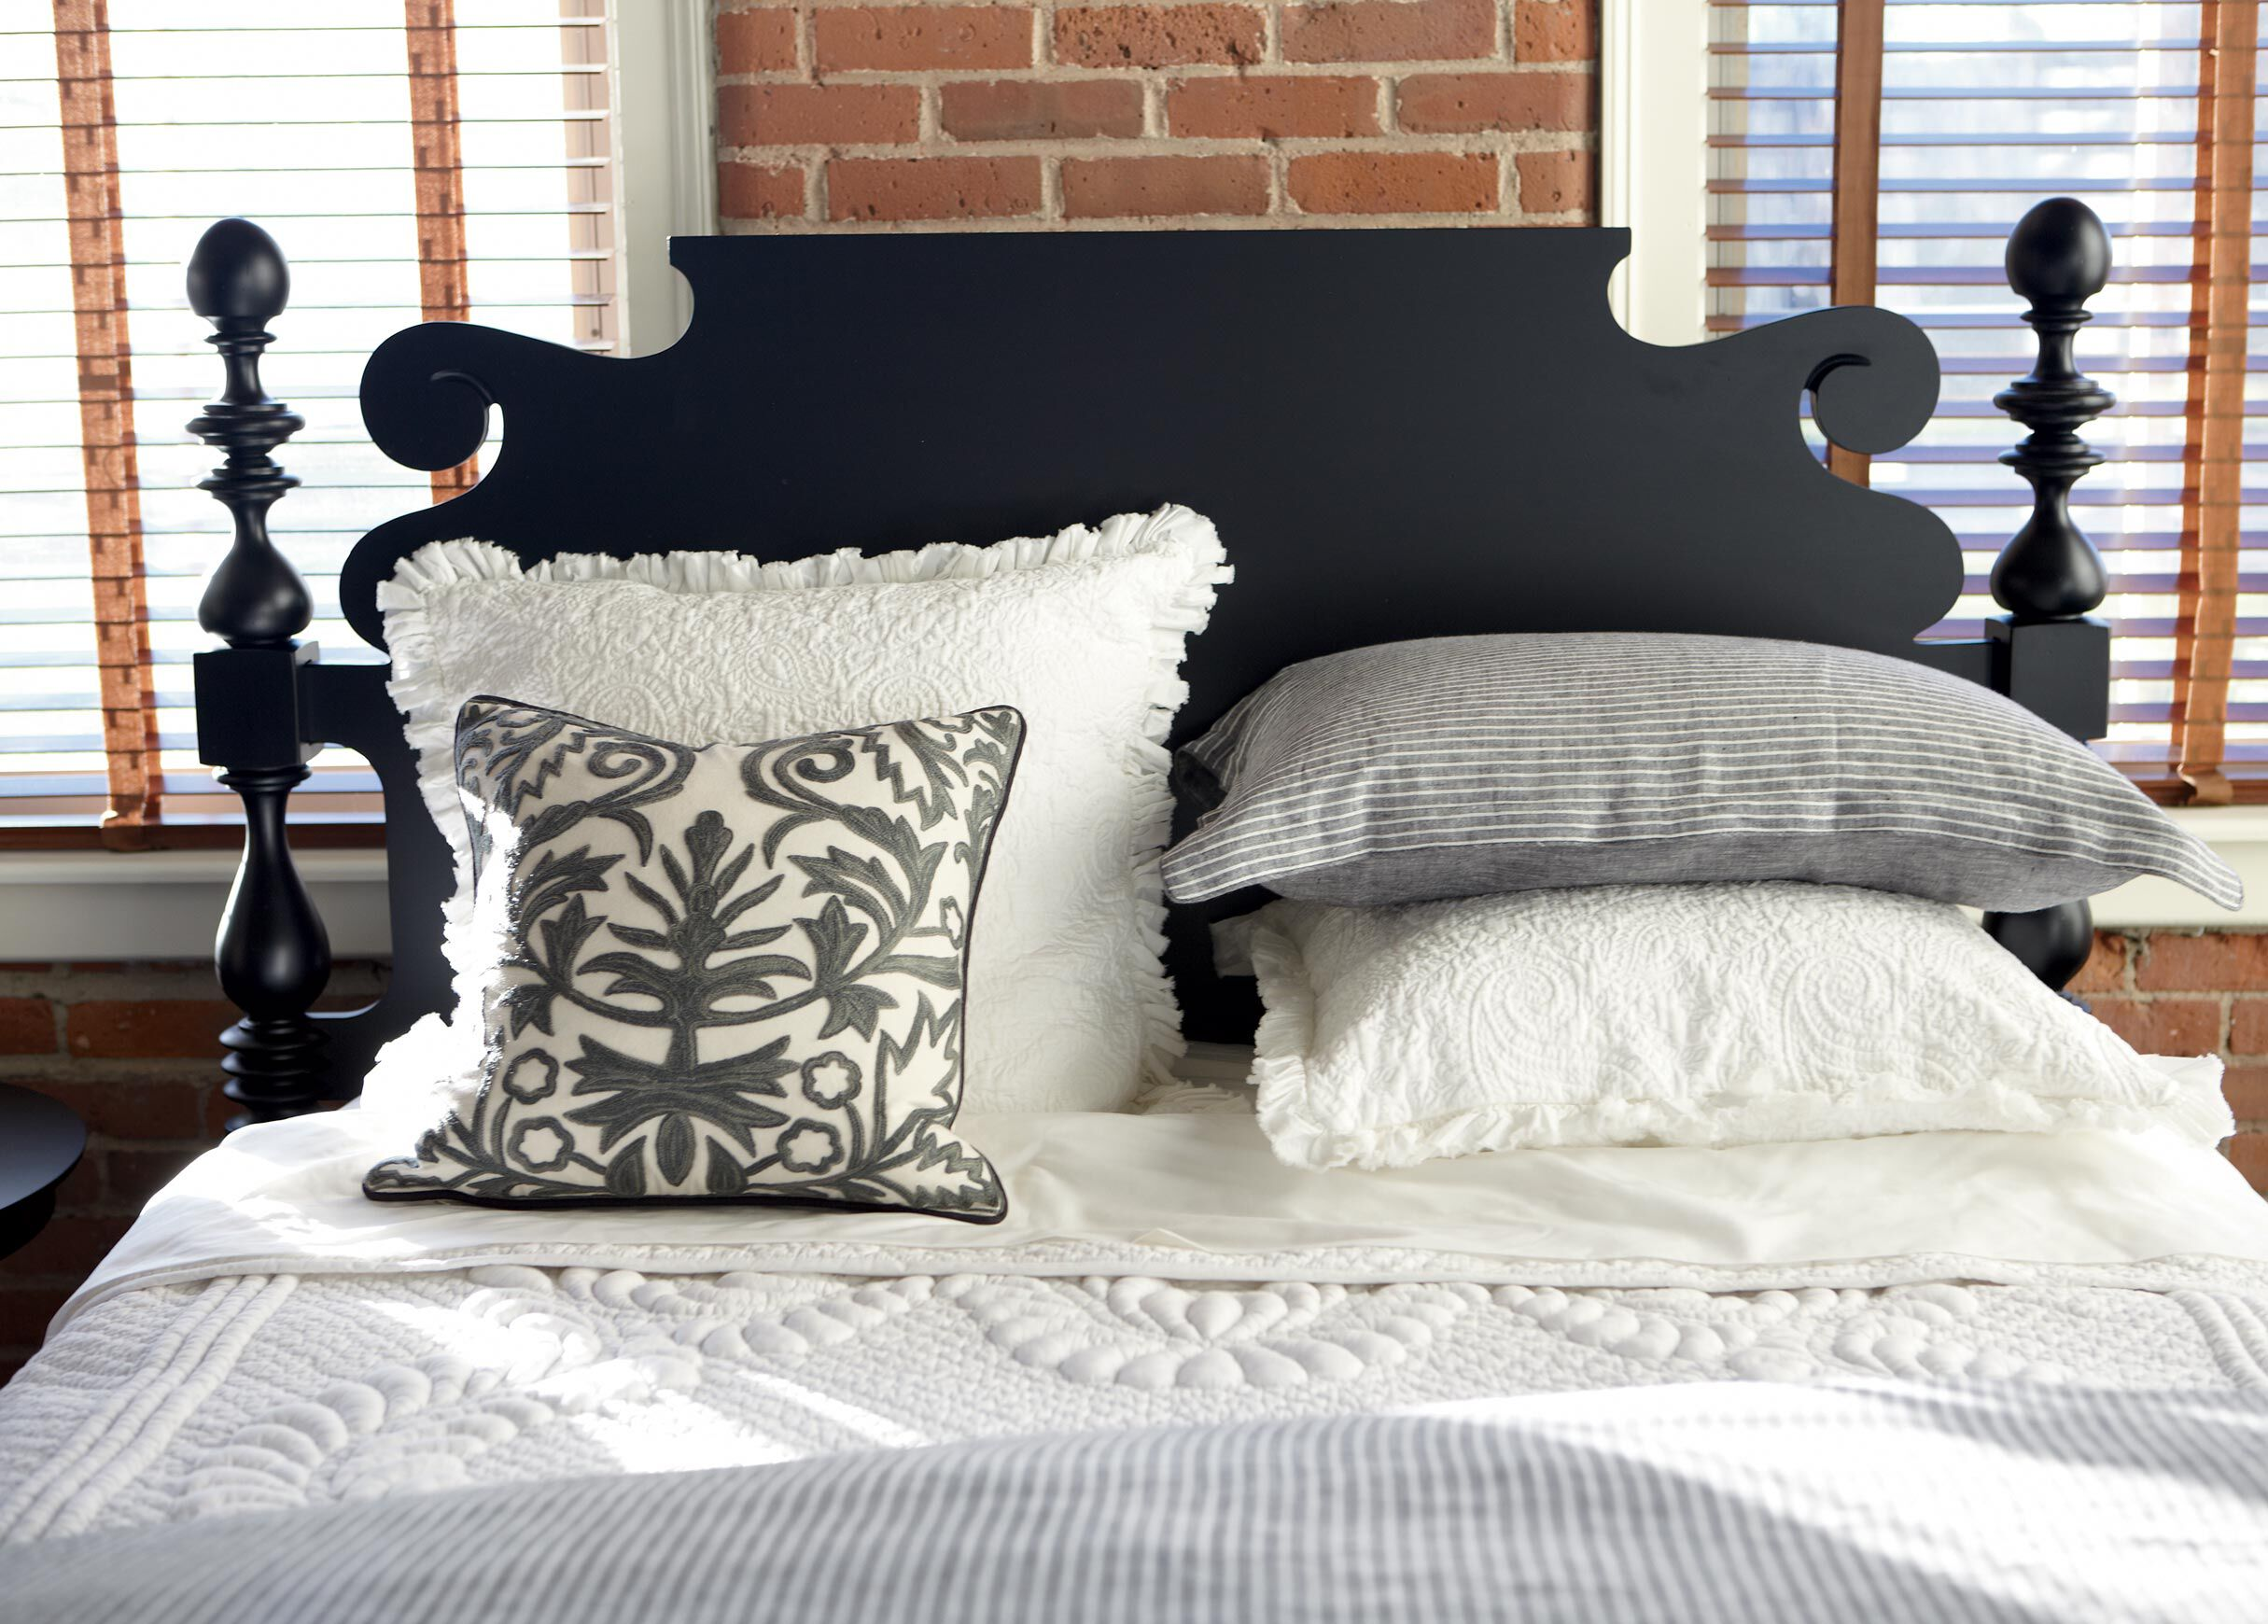 spade blooms blanket new kate throw beyond square pillows york cushion bed in bath pillow wisdom trellis and gallery